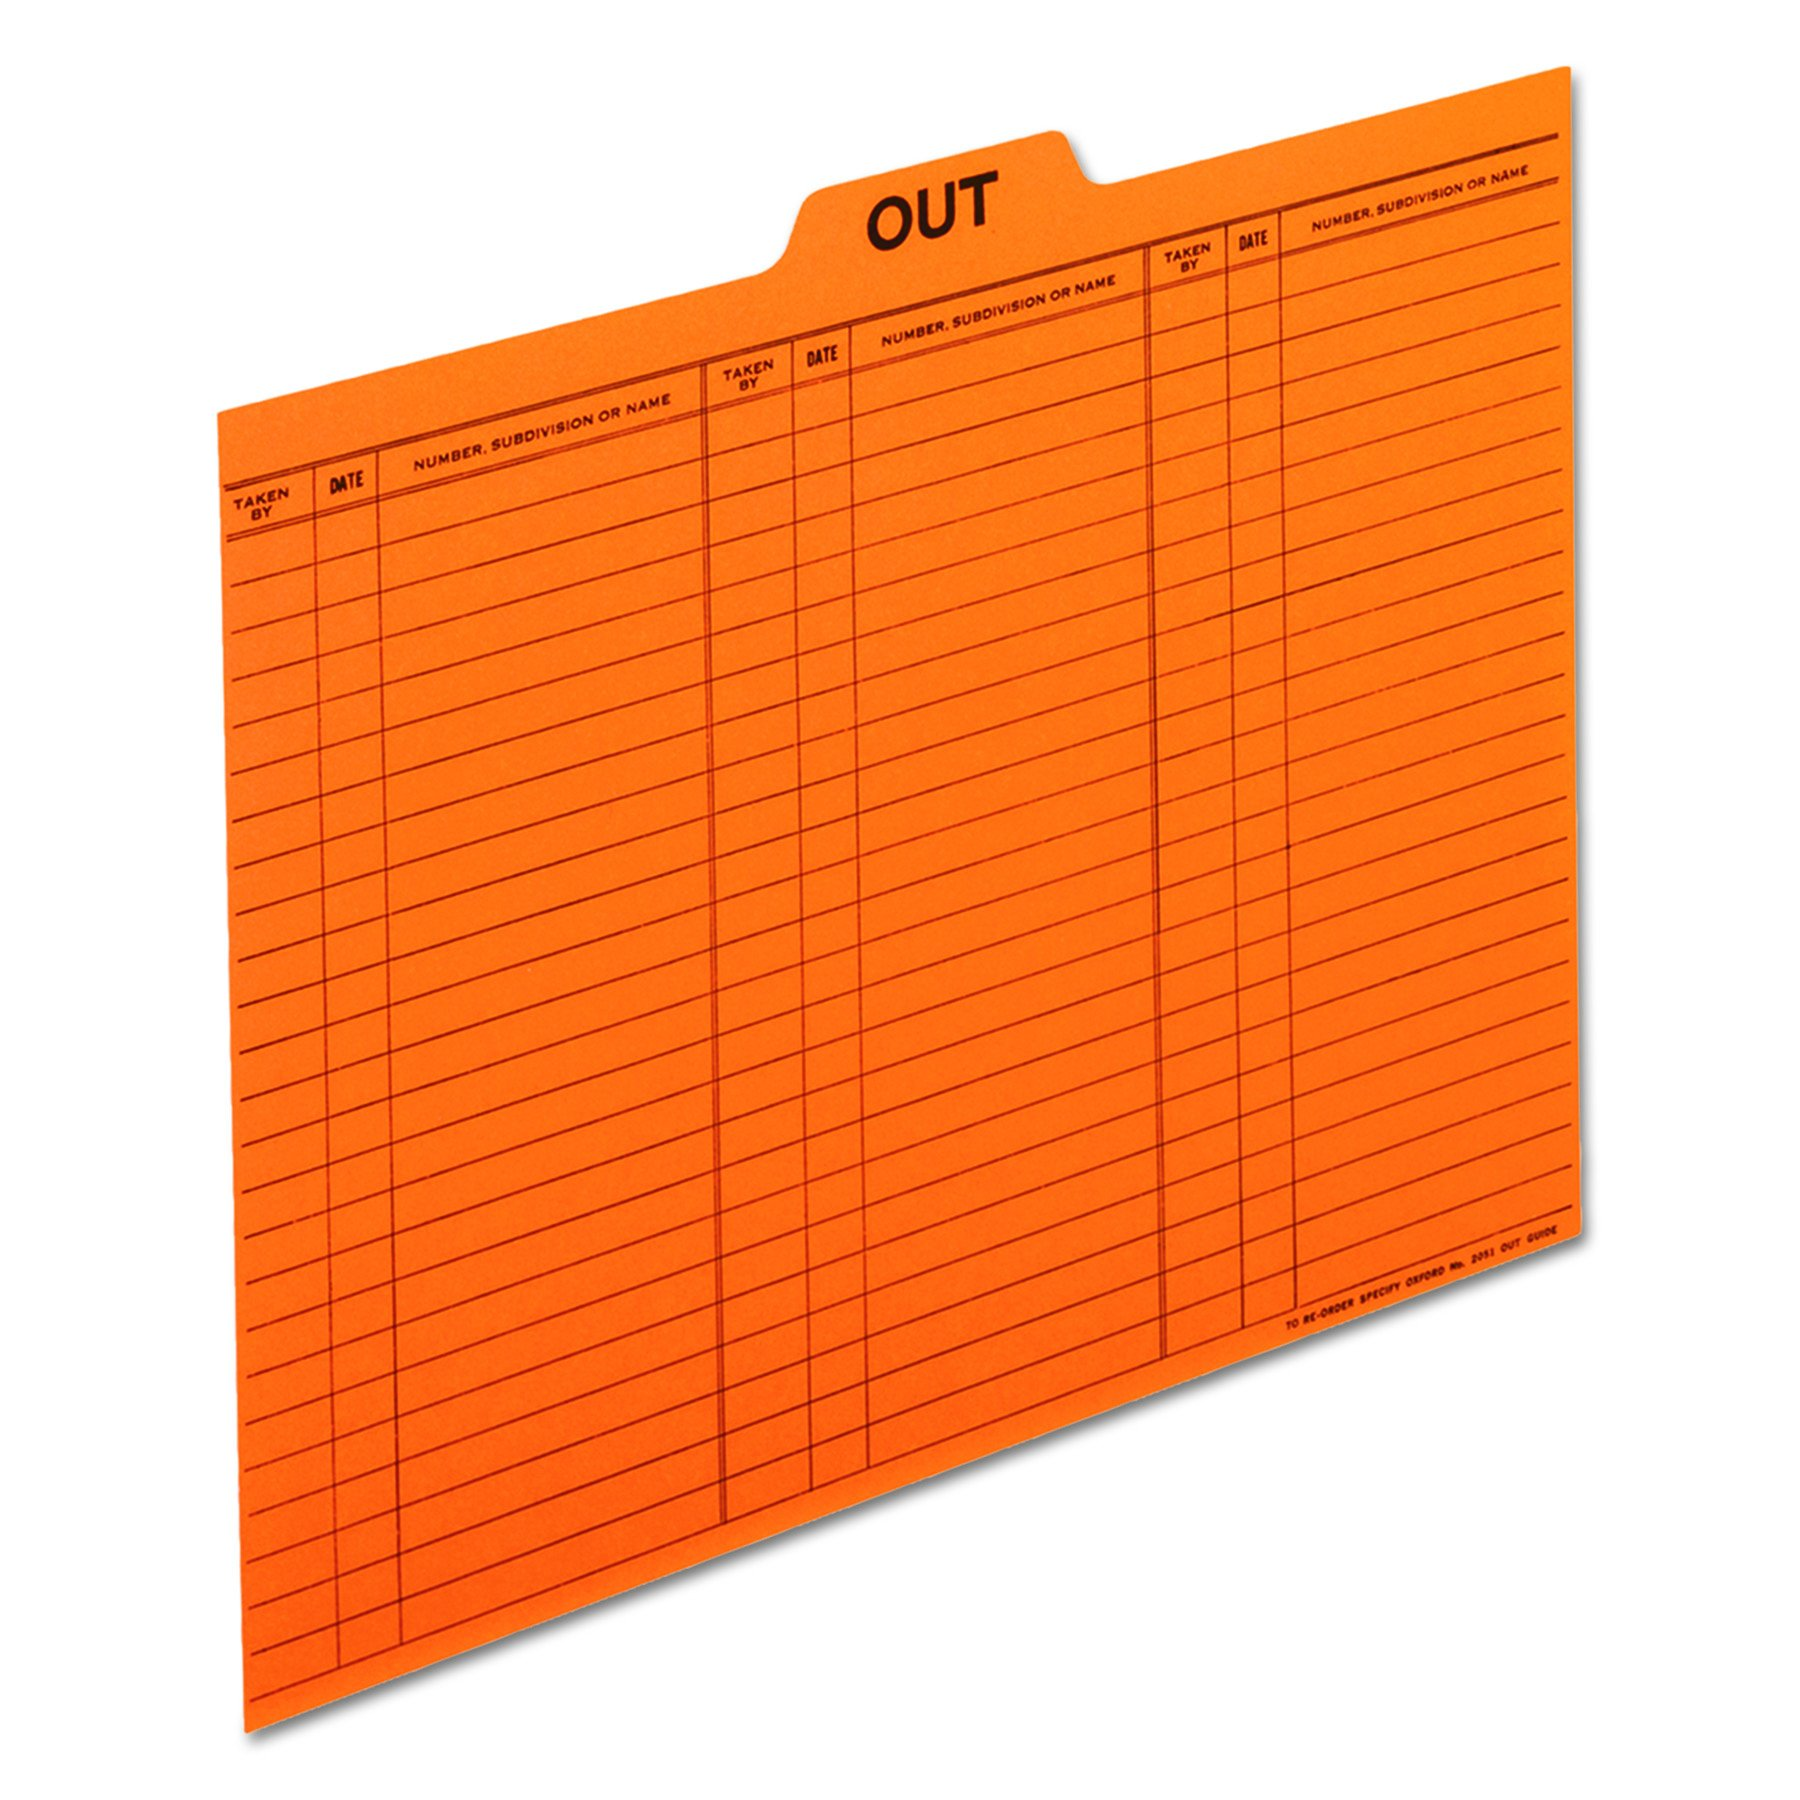 Pendaflex 2051 Salmon Colored Charge-Out Guides, top Out tab, Letter Size, 100/box by Pendaflex